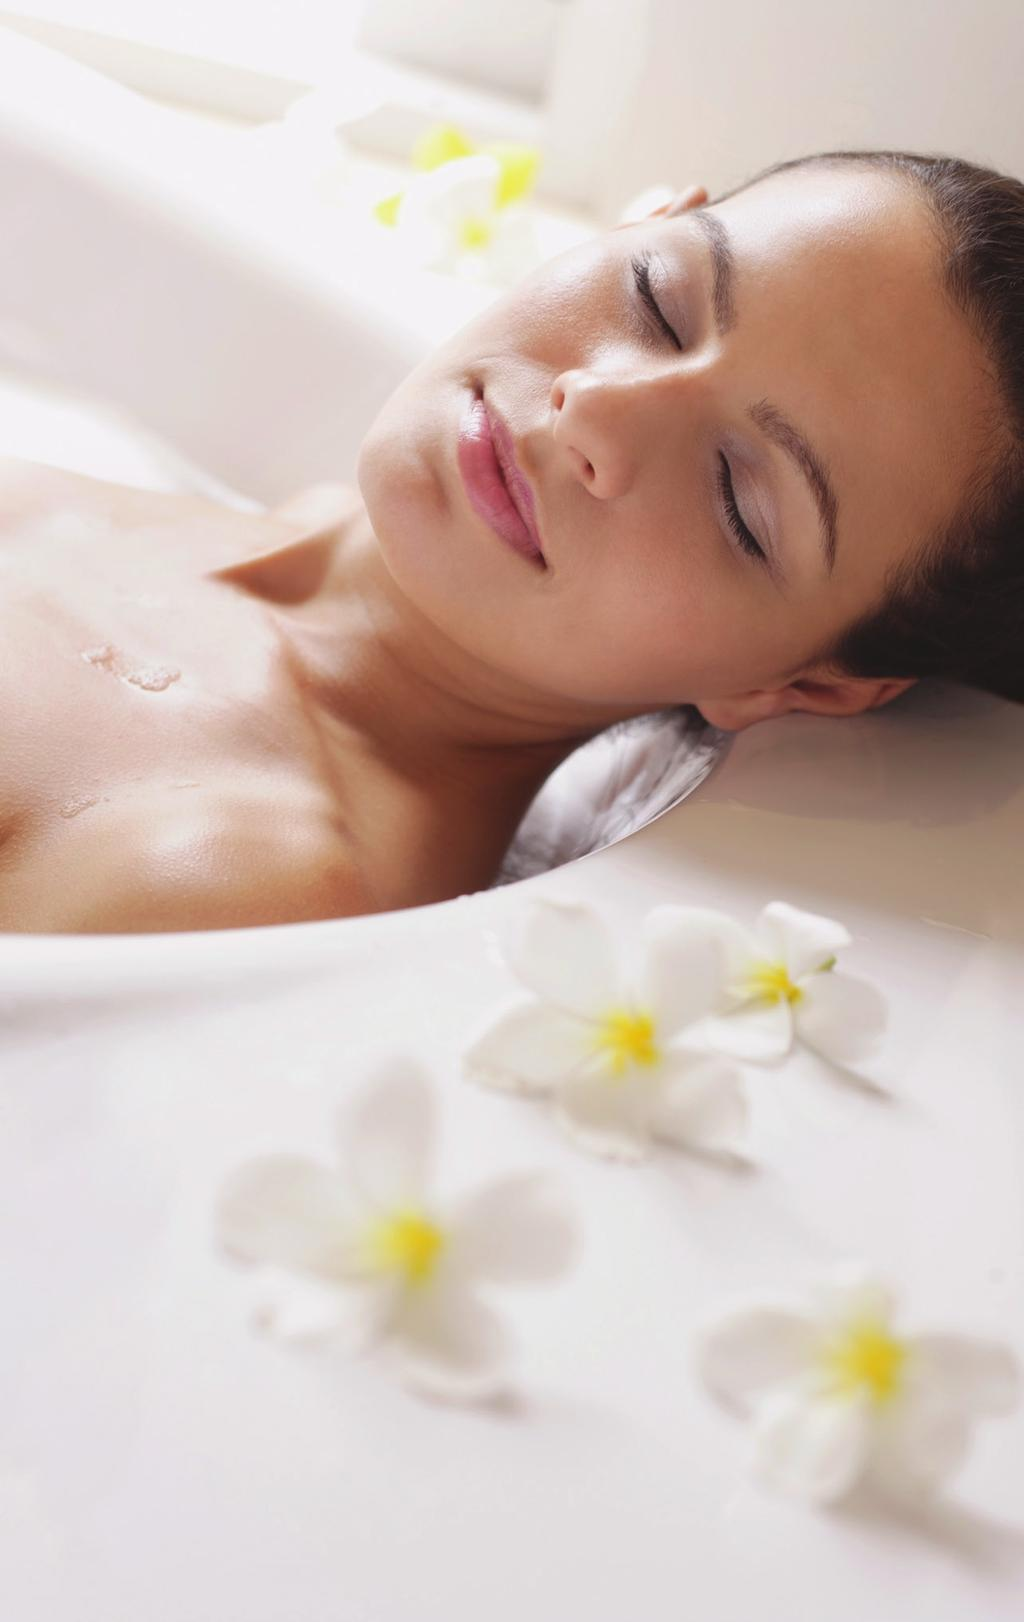 Unwind You Deserve it Treatments and services Escape the everyday with a well-deserved session of relaxation and tension release.